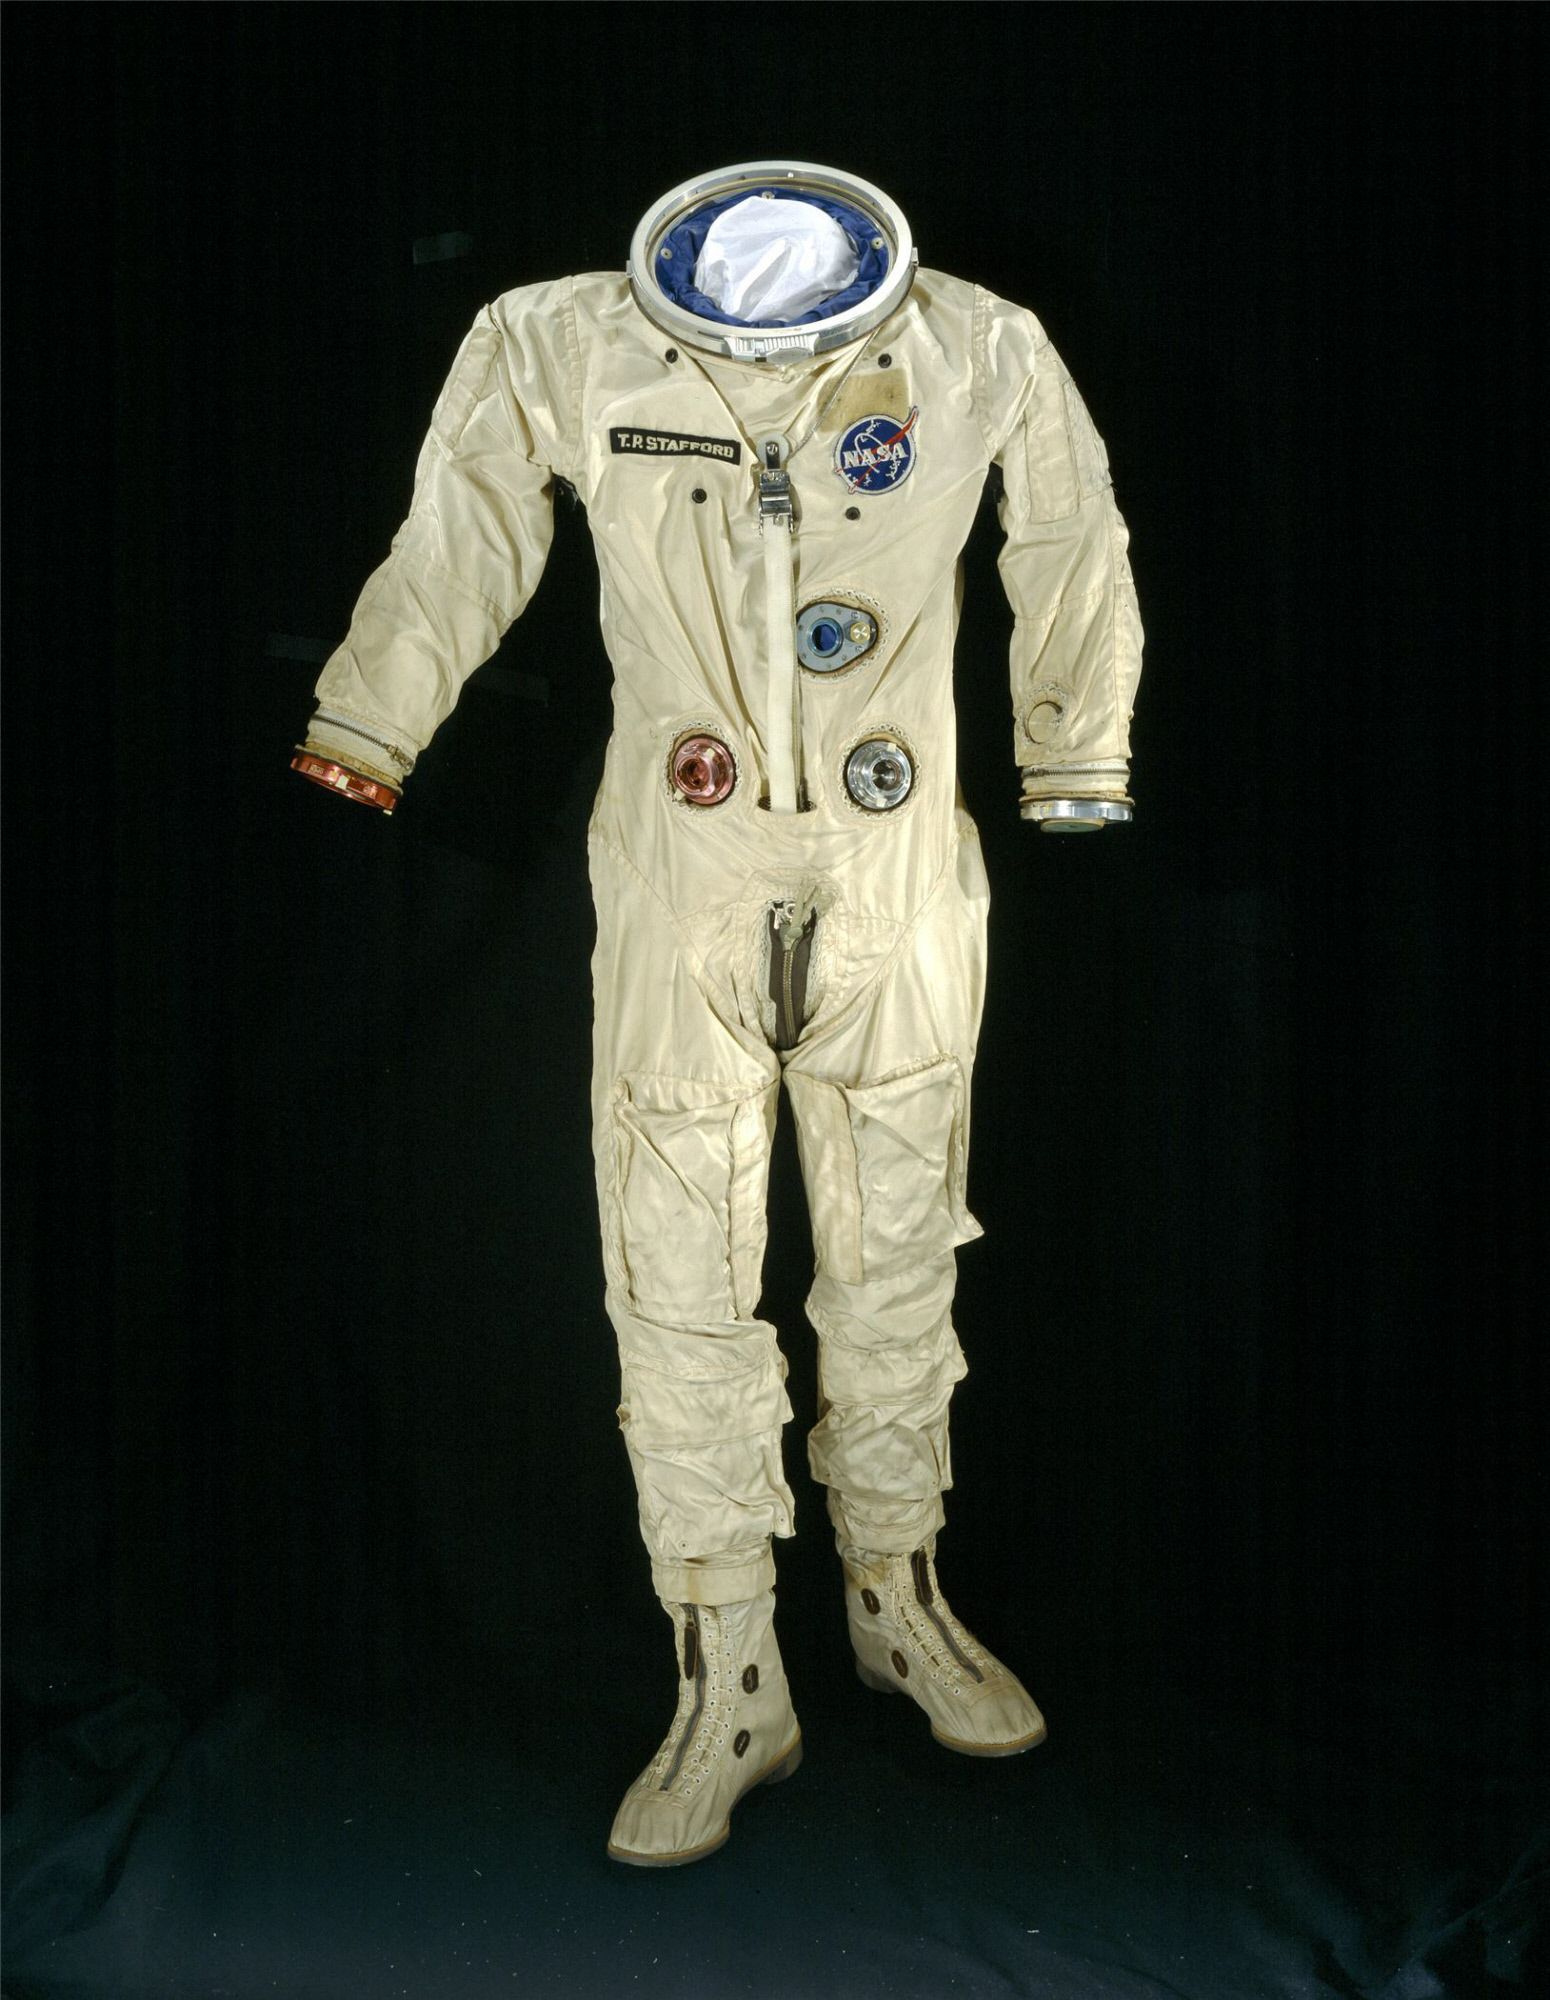 hight resolution of thomas p stafford wore this spacesuit on gemini ix a mission launched june 3 1966